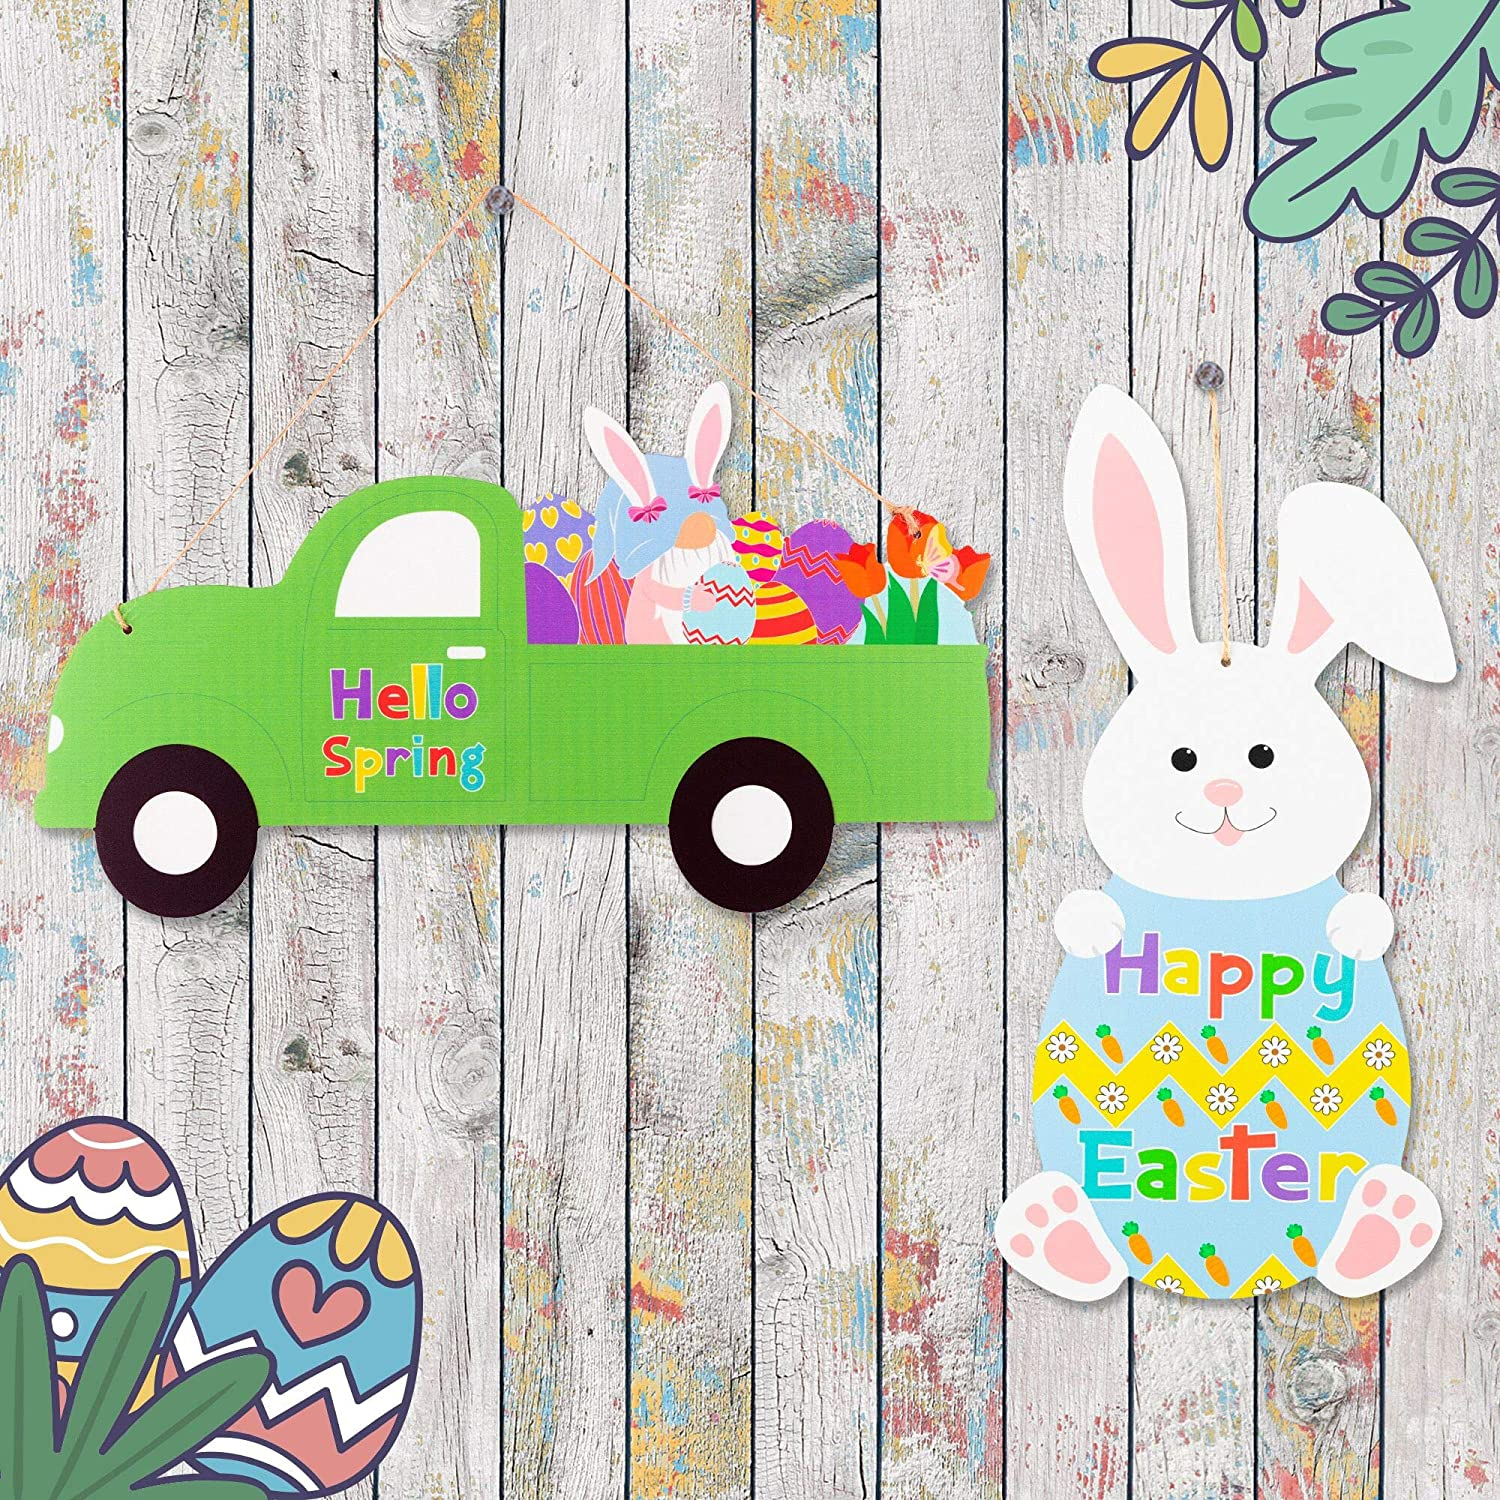 2Pcs Easter Wooden Wall Decoration Rabbit Shape Hanging Decoration Vintage Truck Door Sign with Ribbon Happy Easter Hanging Decor Hello Spring Porch Sign for Home Easter Decoration